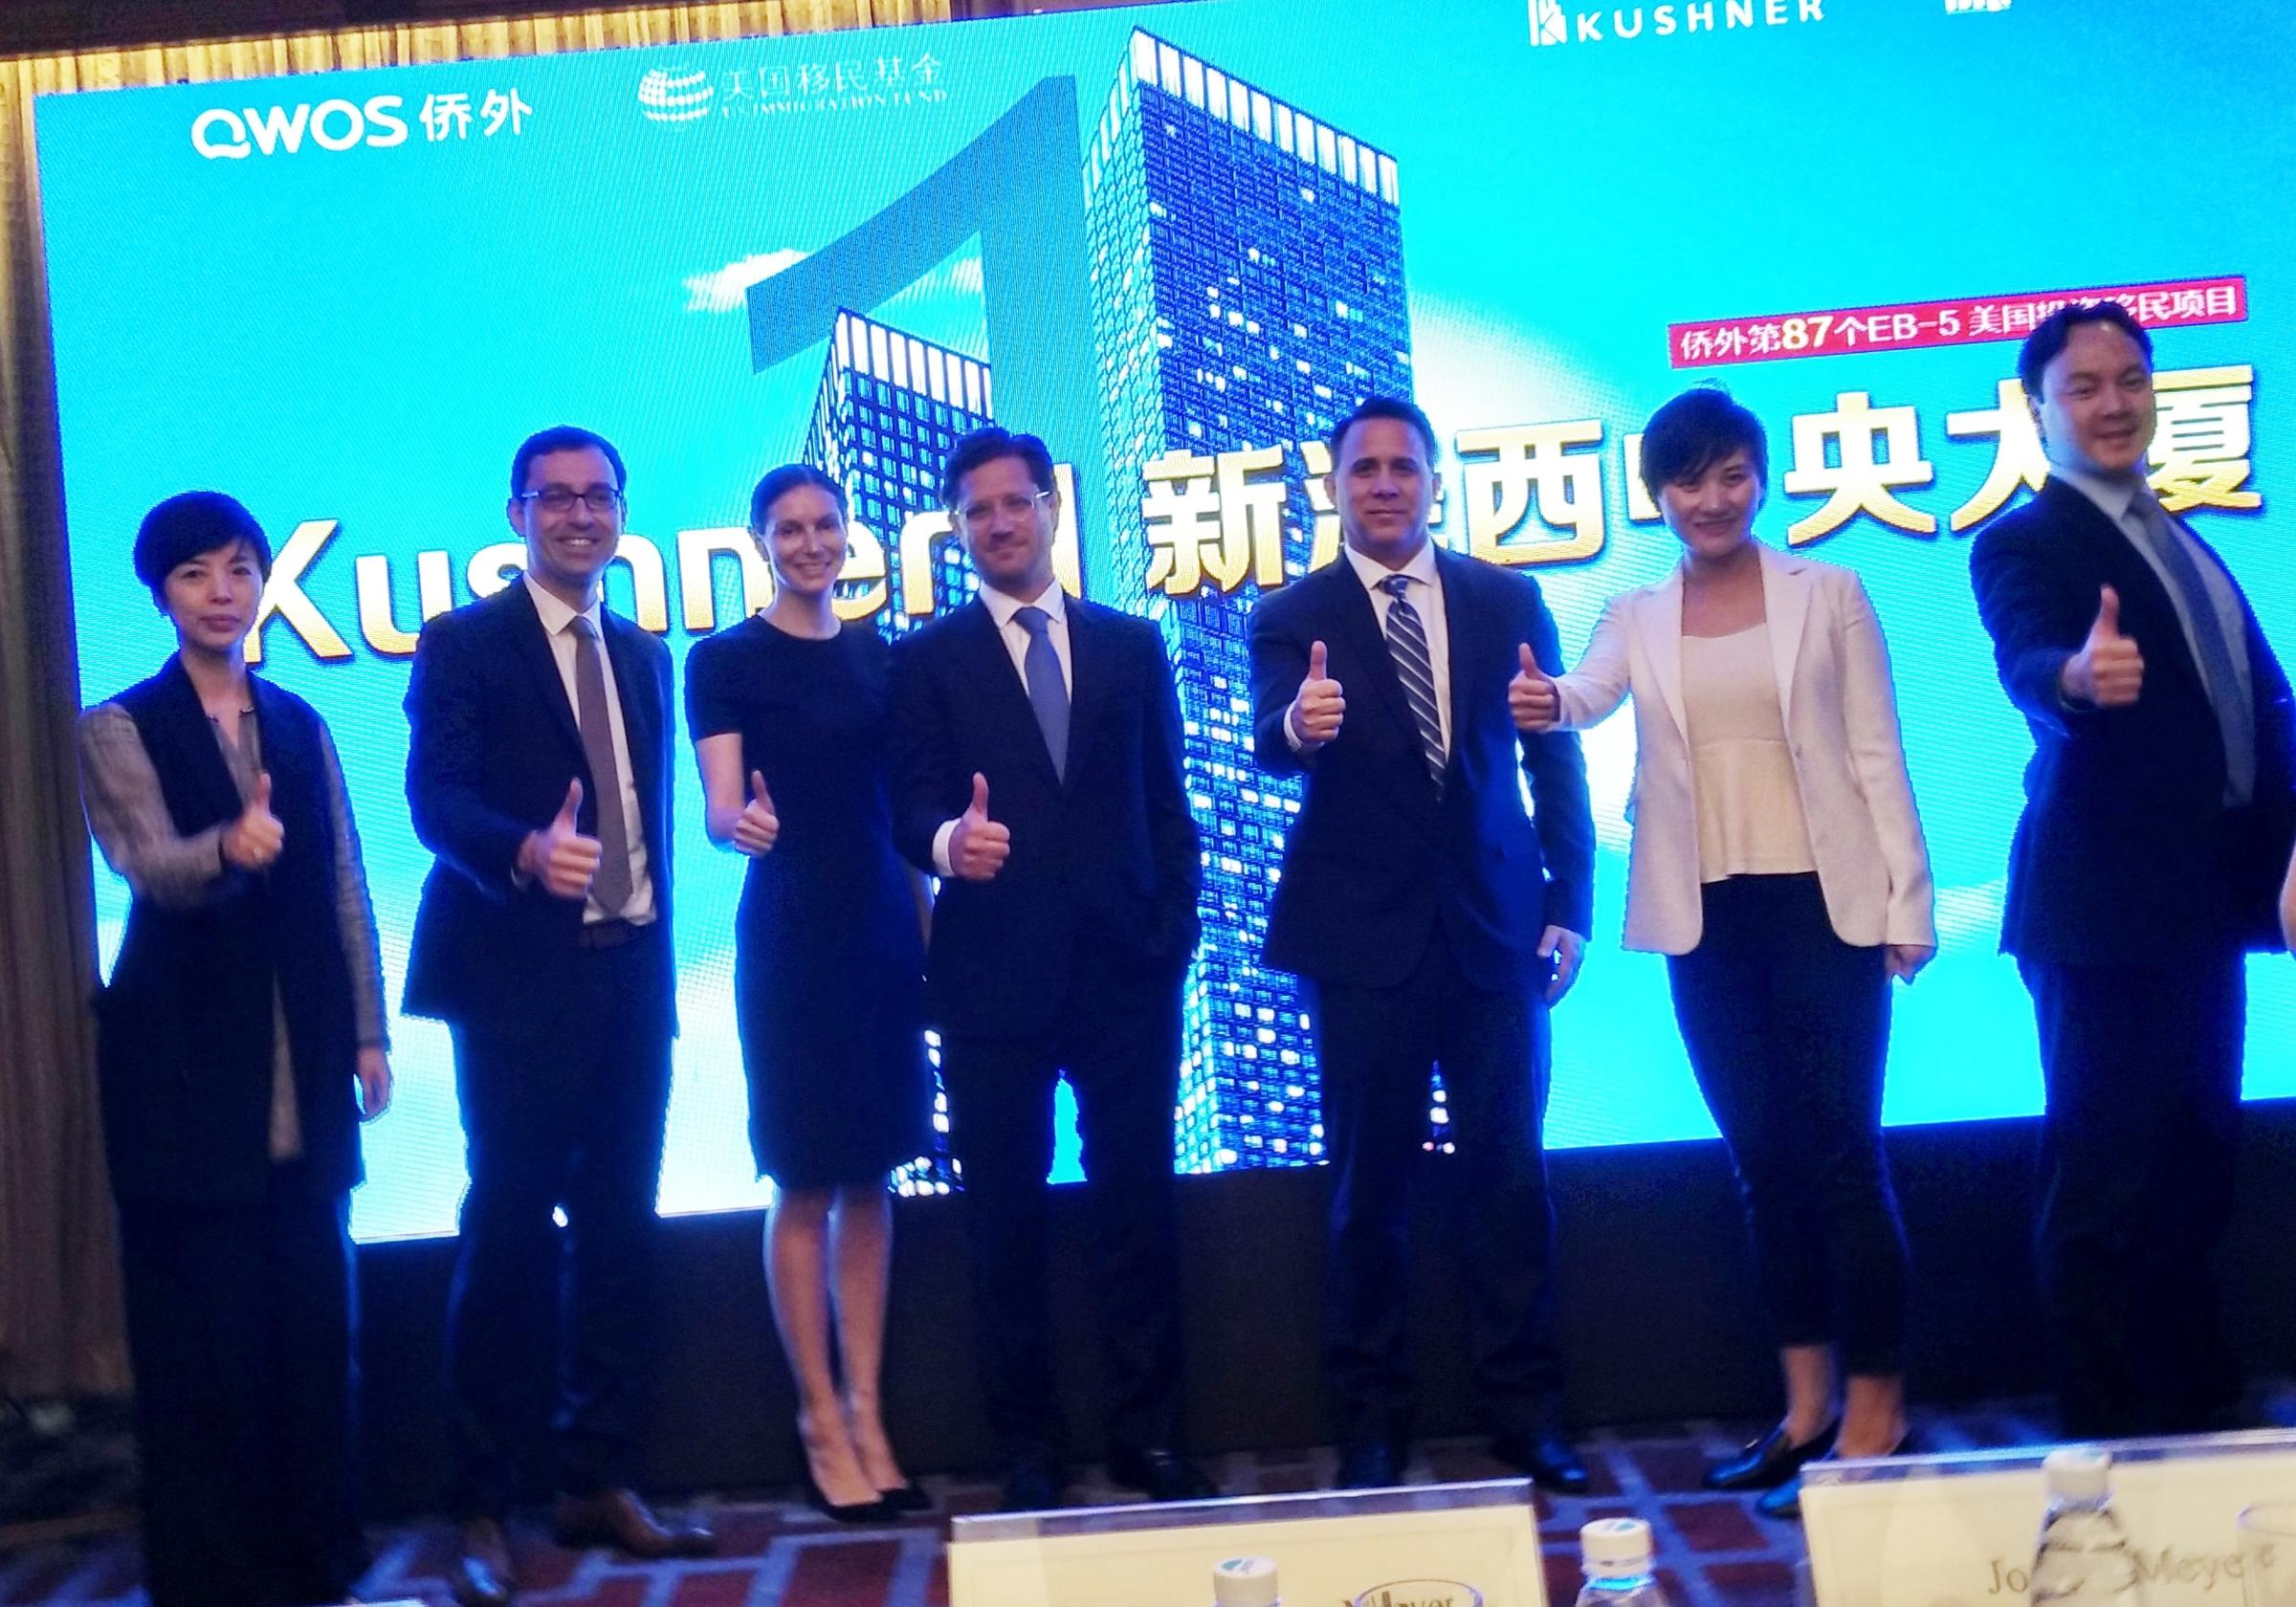 Reporters barred from China event seeking investment in Kushner project